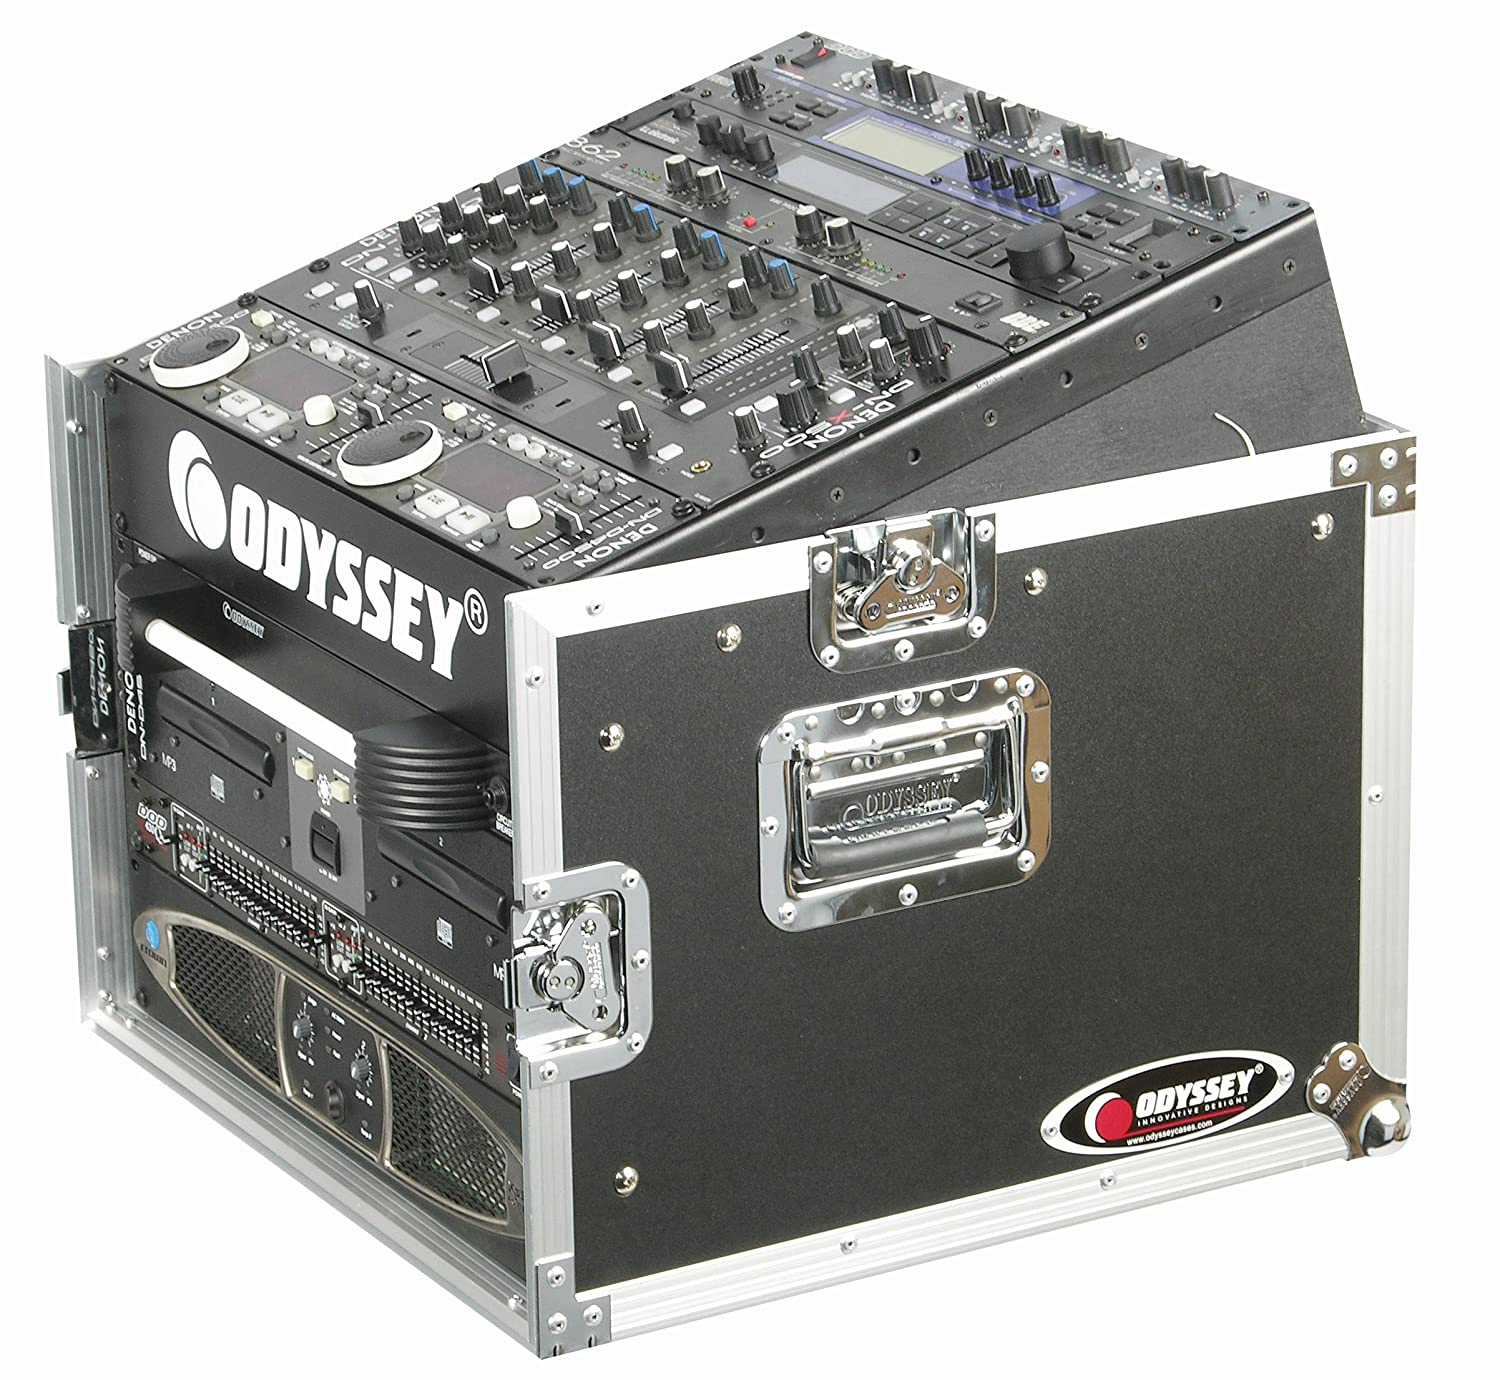 Odyssey FZ1006 Flight Zone Ata Combo Rack: 10u Slant, 6u Vertical Odyssey Innovative Designs